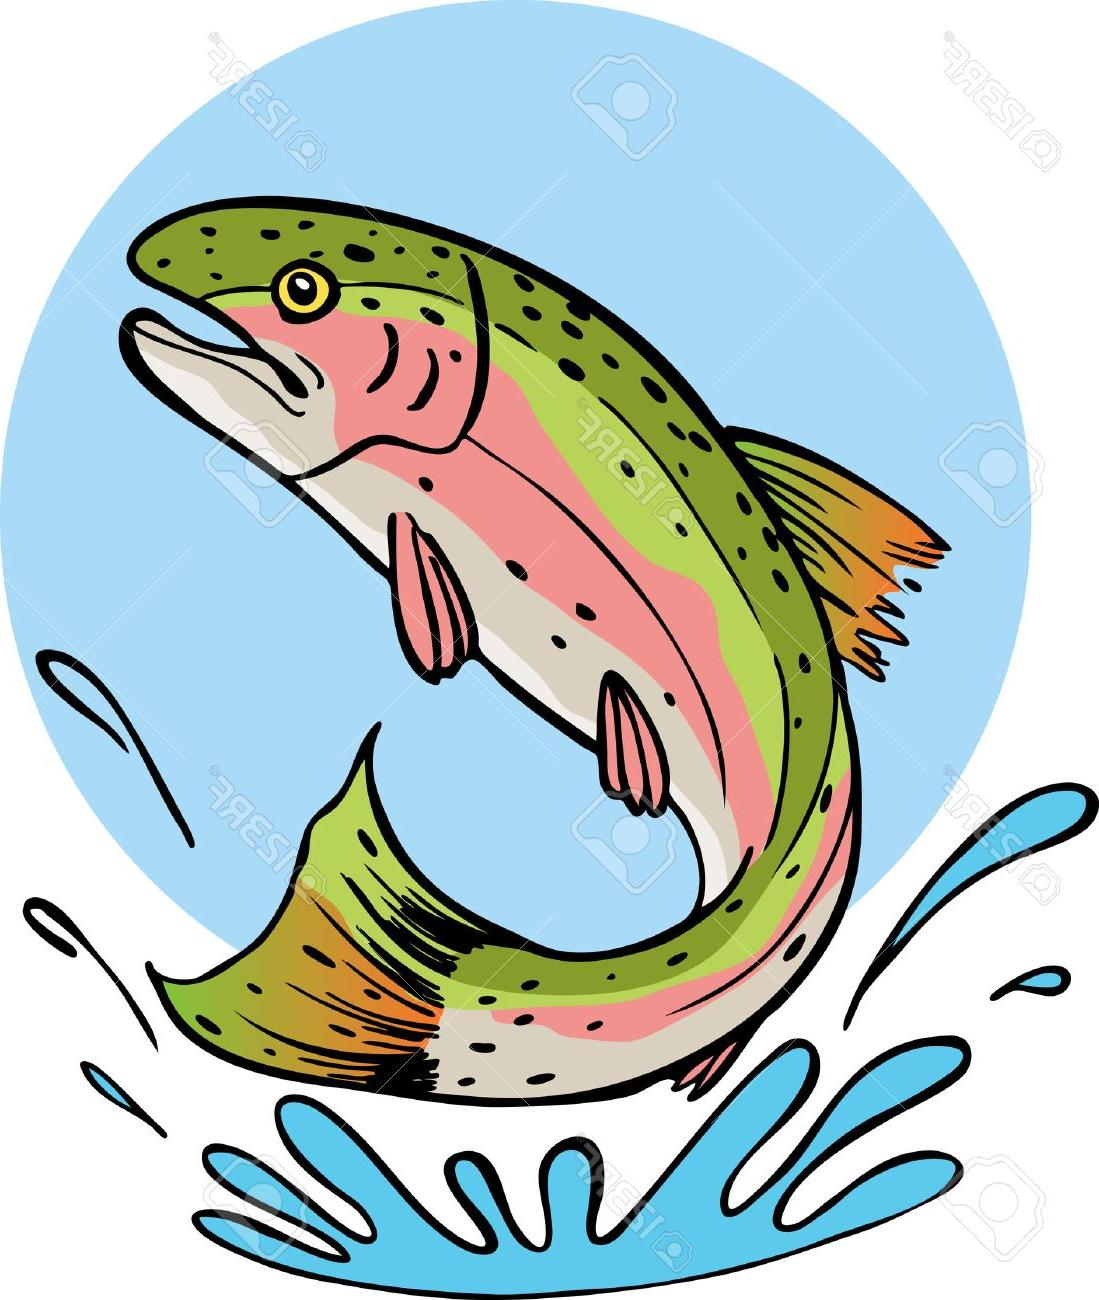 Top Trout Clip Art Vector Pictures » Free Vector Art, Images.